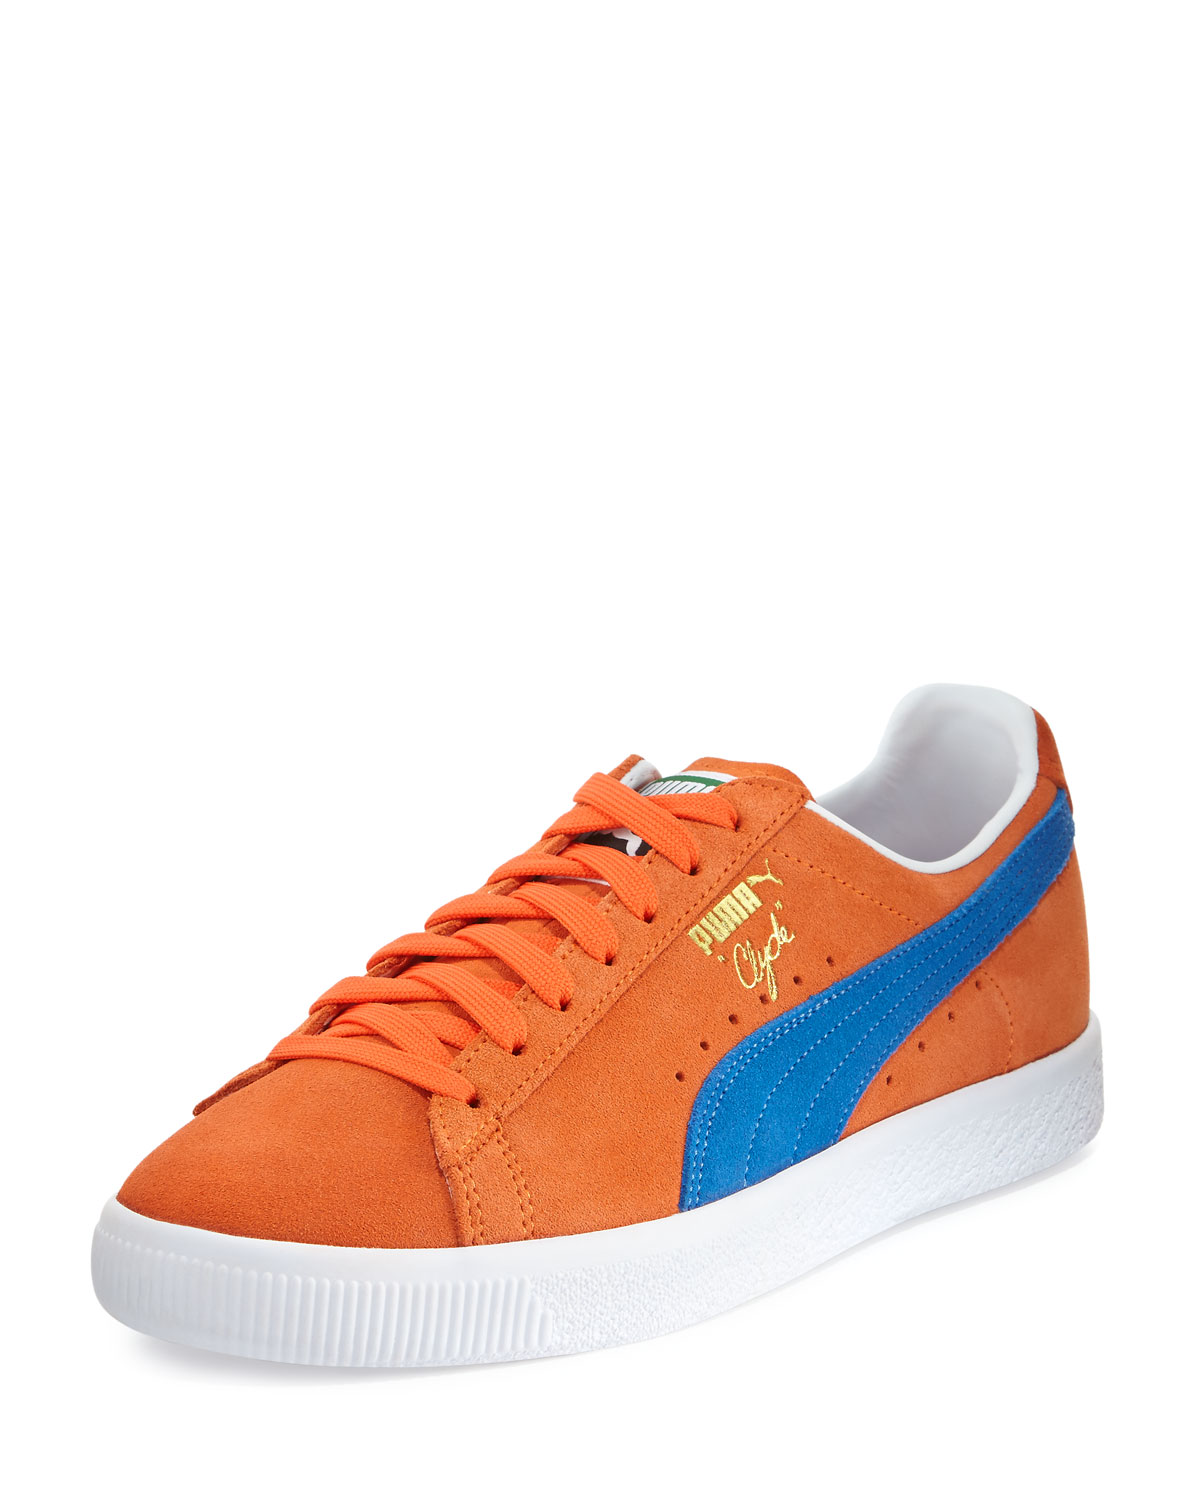 new styles e2922 e043b Clyde Suede Low-Top Sneaker, Orange/Blue